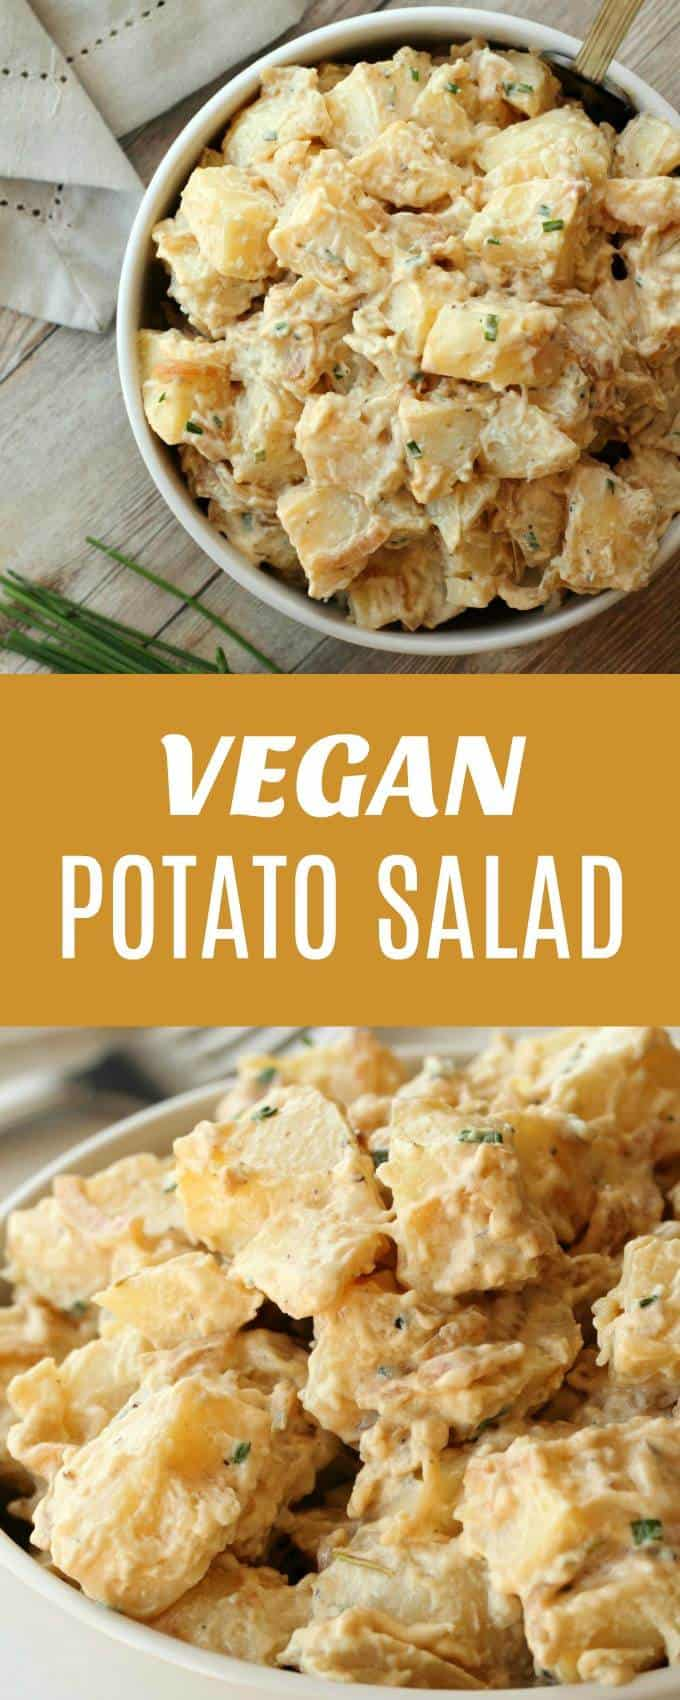 Creamy tangy and satisfying vegan potato salad. This vegan take on a classic dish will make you very popular at the next BBQ! And no one will know it's vegan unless you tell them! | lovingitvegan.com